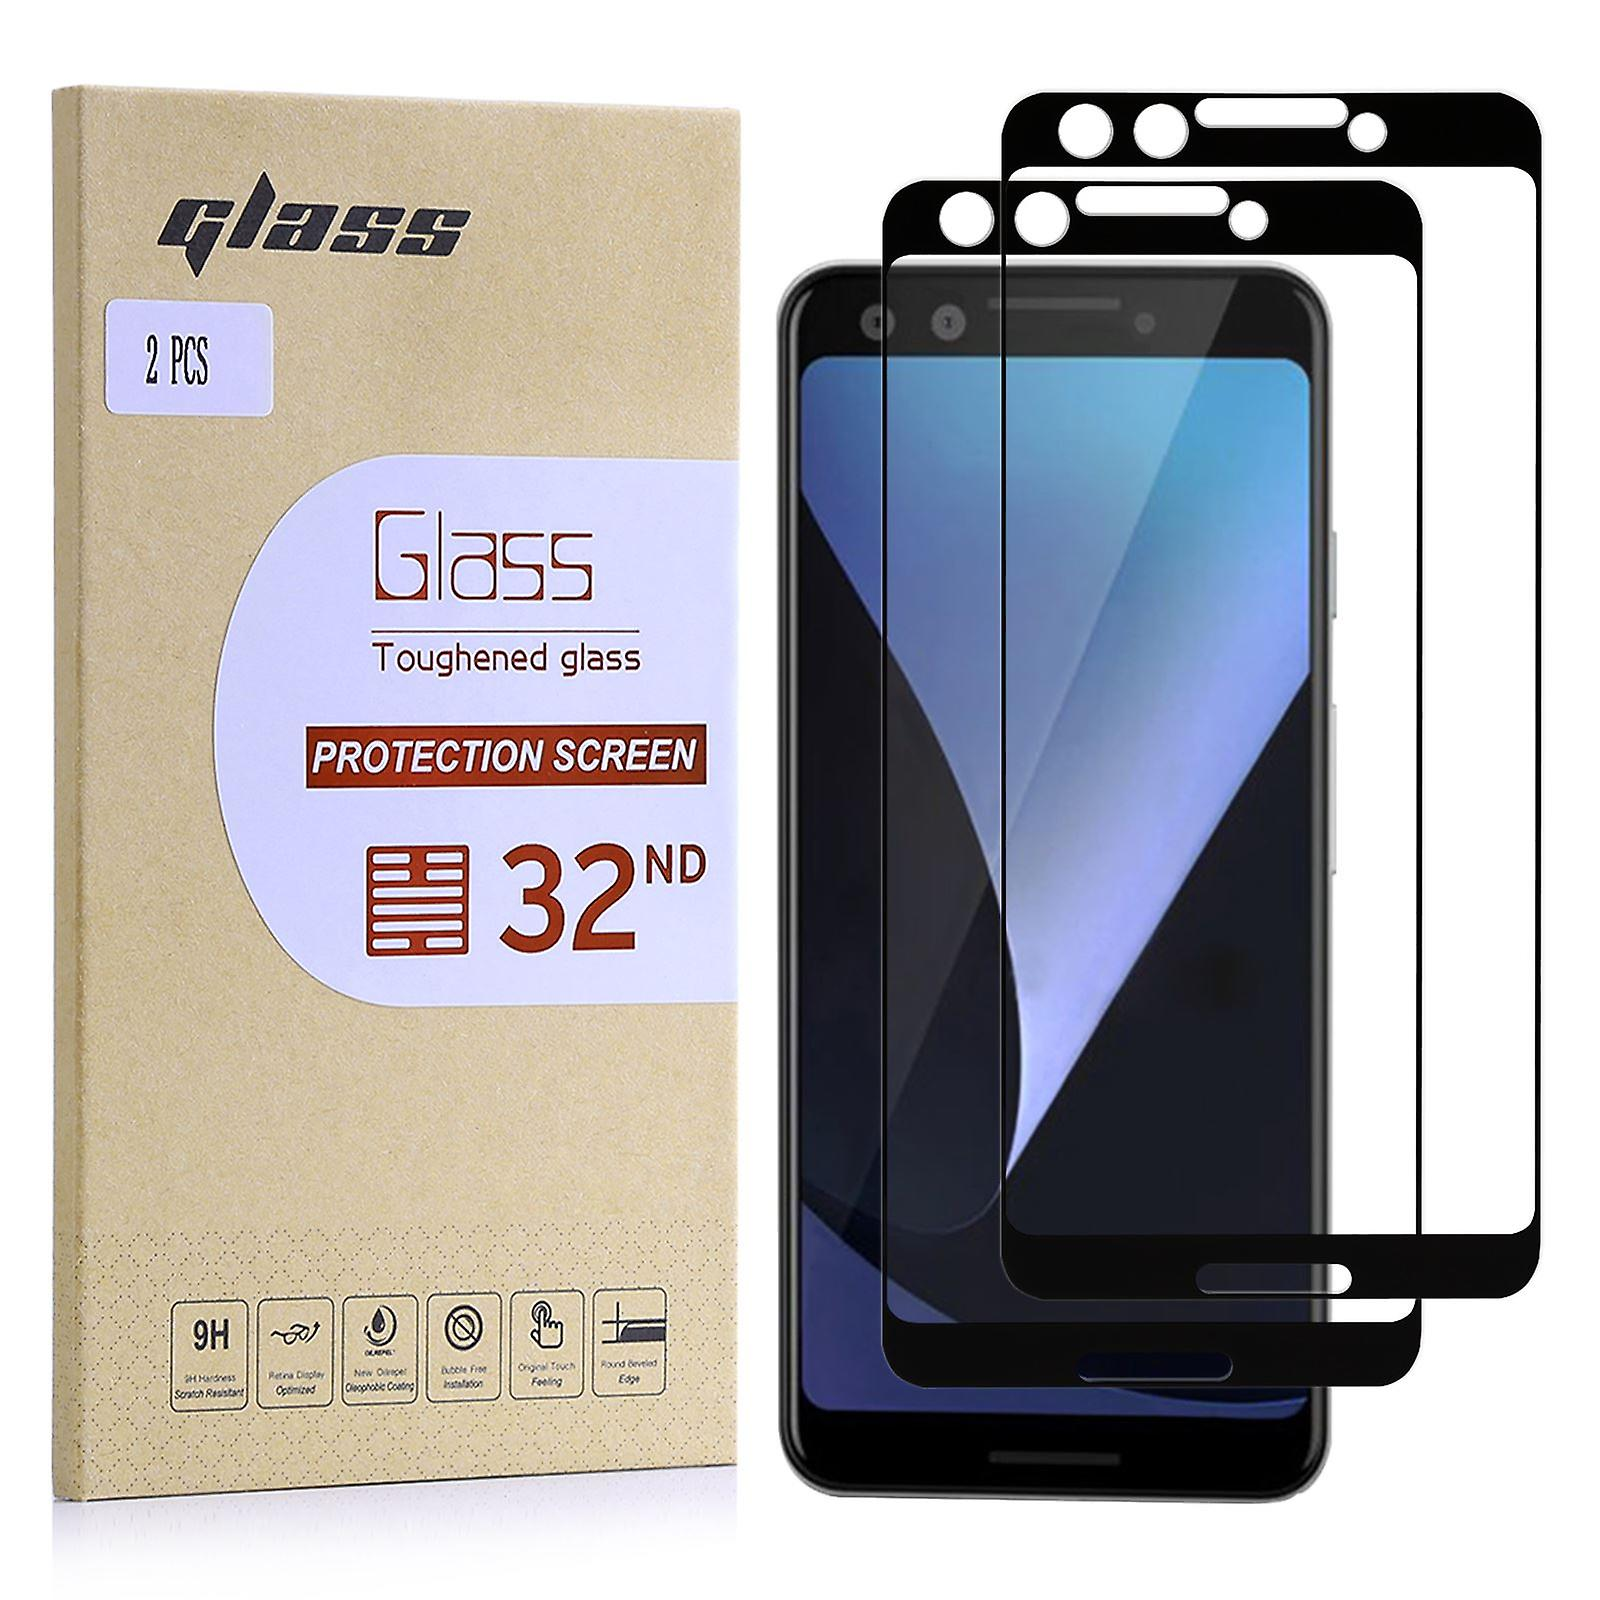 Extra Armoured Tempered Glass for Google Pixel 3 (Black Border) - 2 Pack